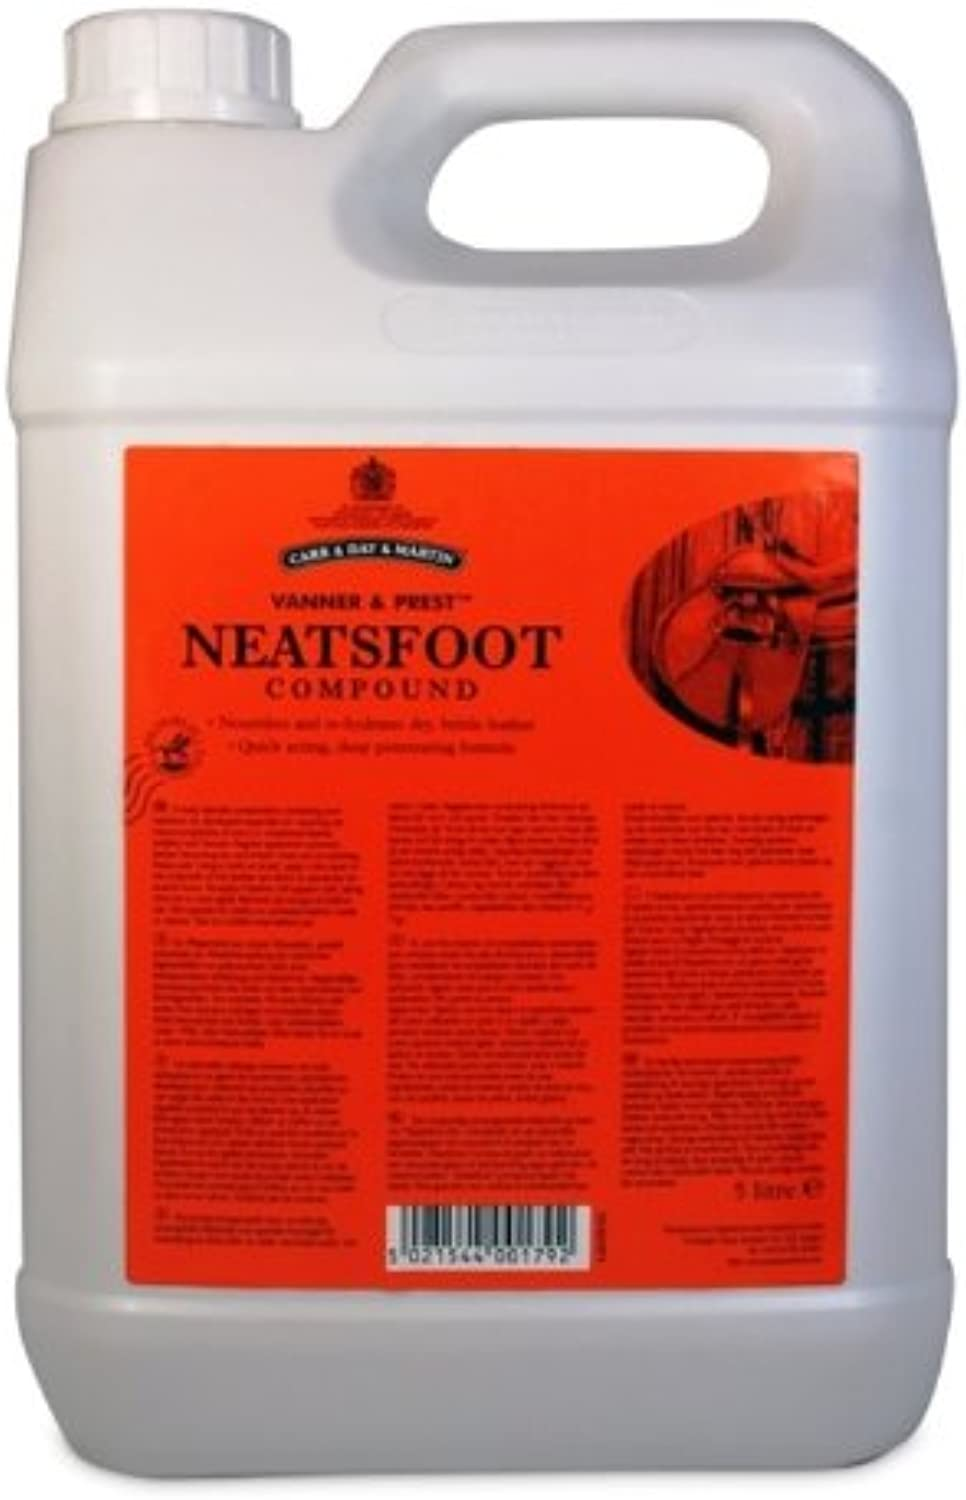 Carr & Day & Martin Pure Neatsfoot Leather Compound x Size  5 Lt